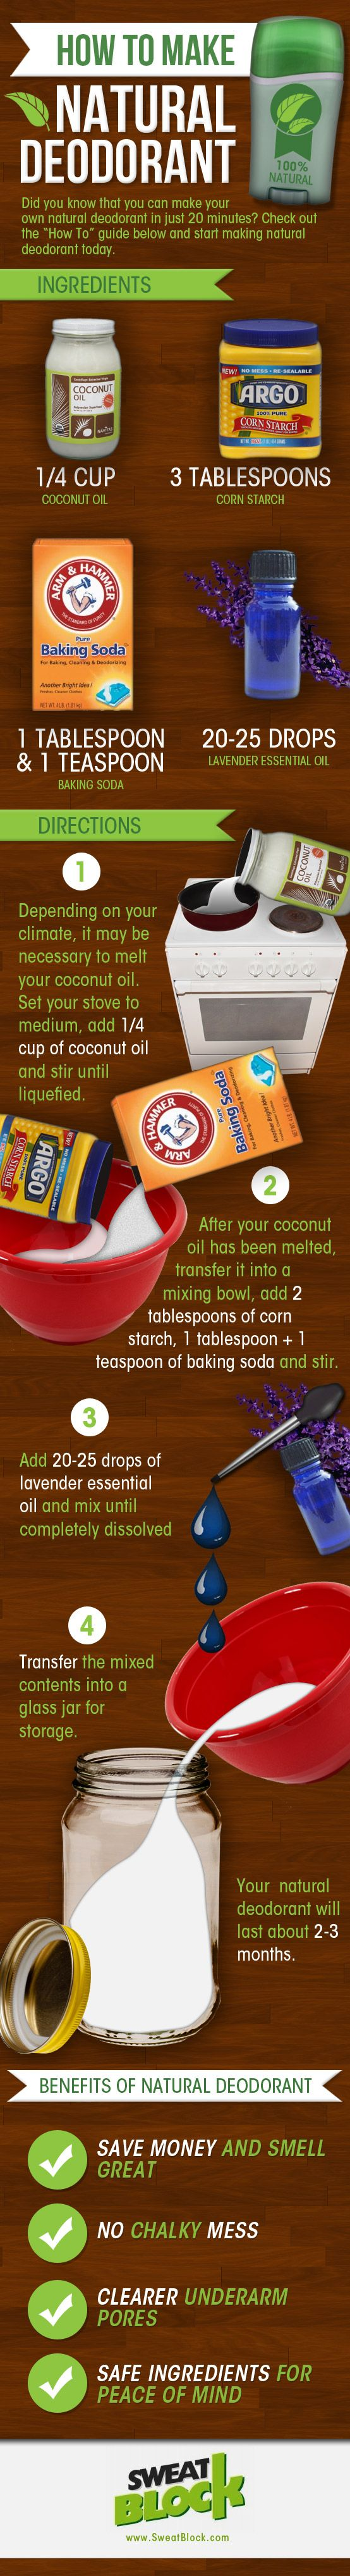 How To Make Natural Deodorant [infographic] Best lavender is from Youngliving.org email me with questions. Tamihairengineer@aim.com